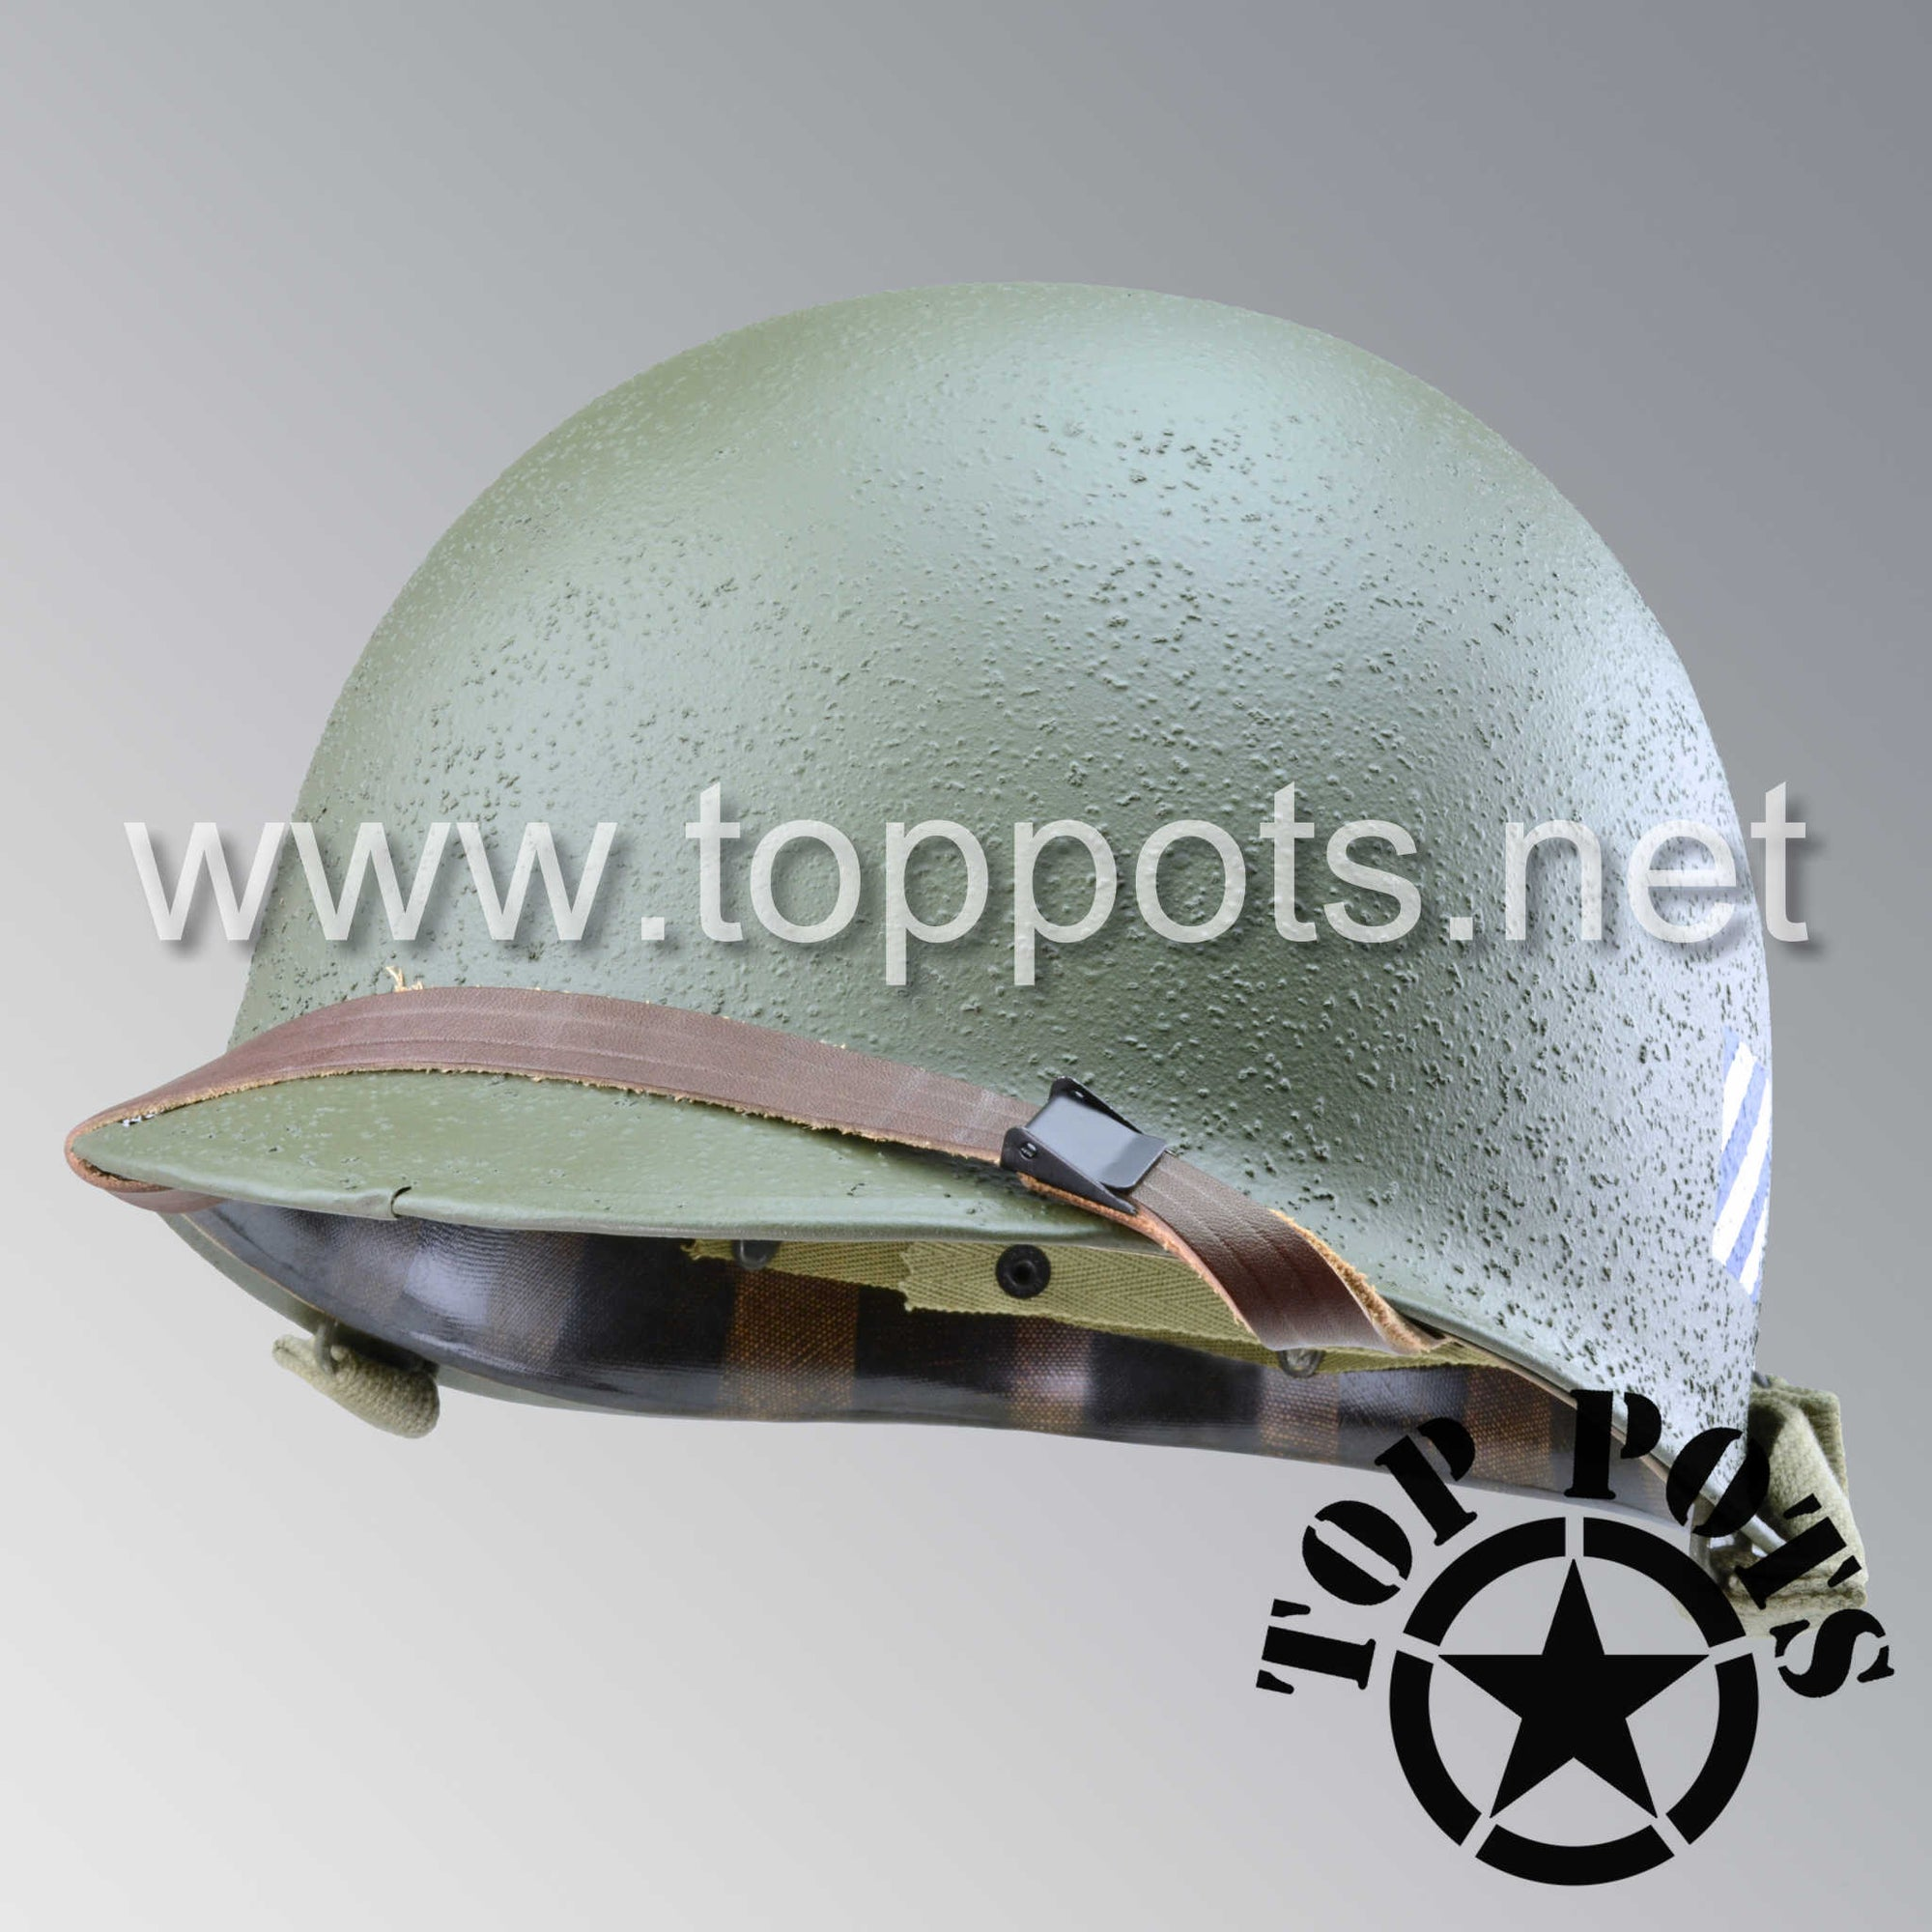 Image 1 of WWII US Army Restored Original M1 Infantry Helmet Swivel Bale Shell and Liner with 3rd Infantry Division 5th Regiment Emblem